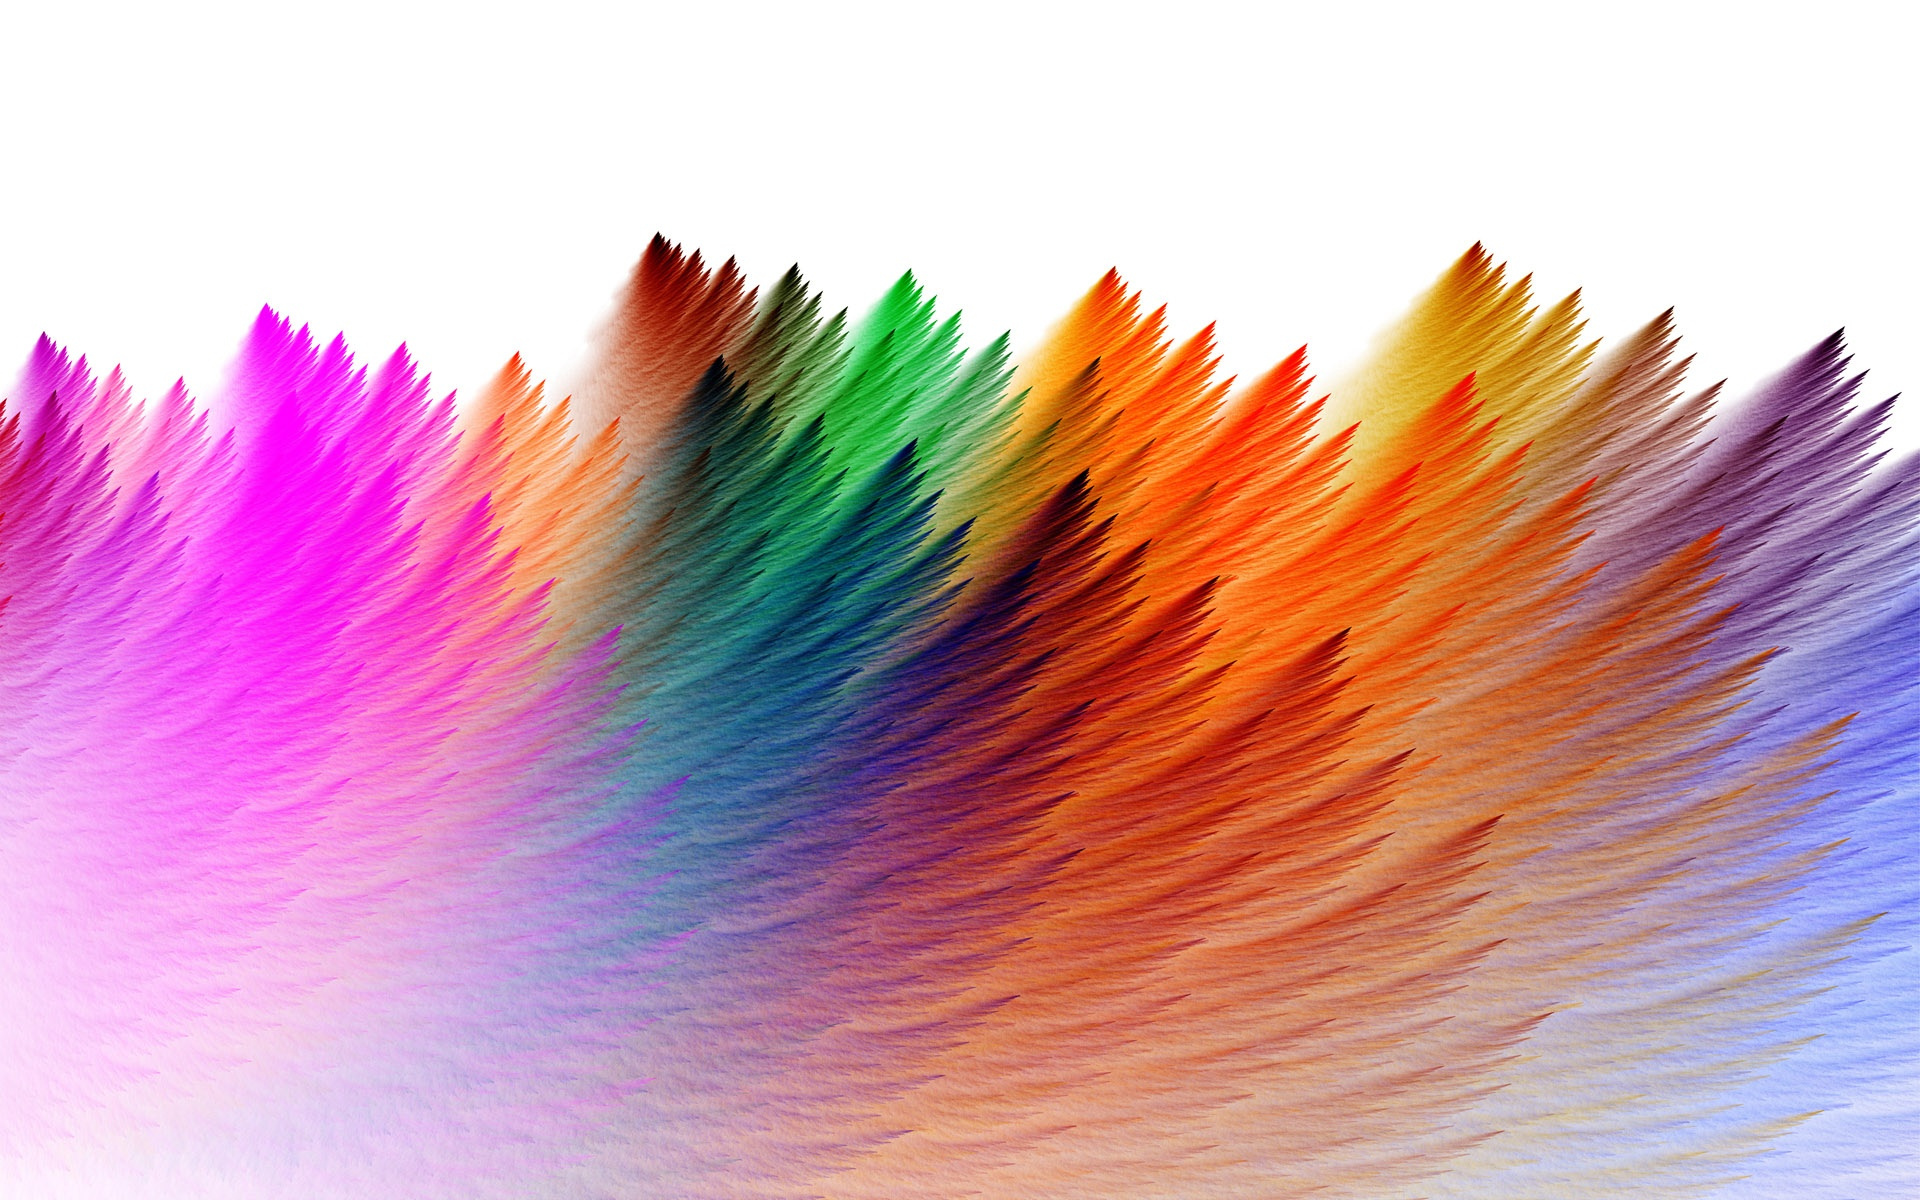 Colorful Feathers Abstract Wallpapers - 1920x1200 - 712752